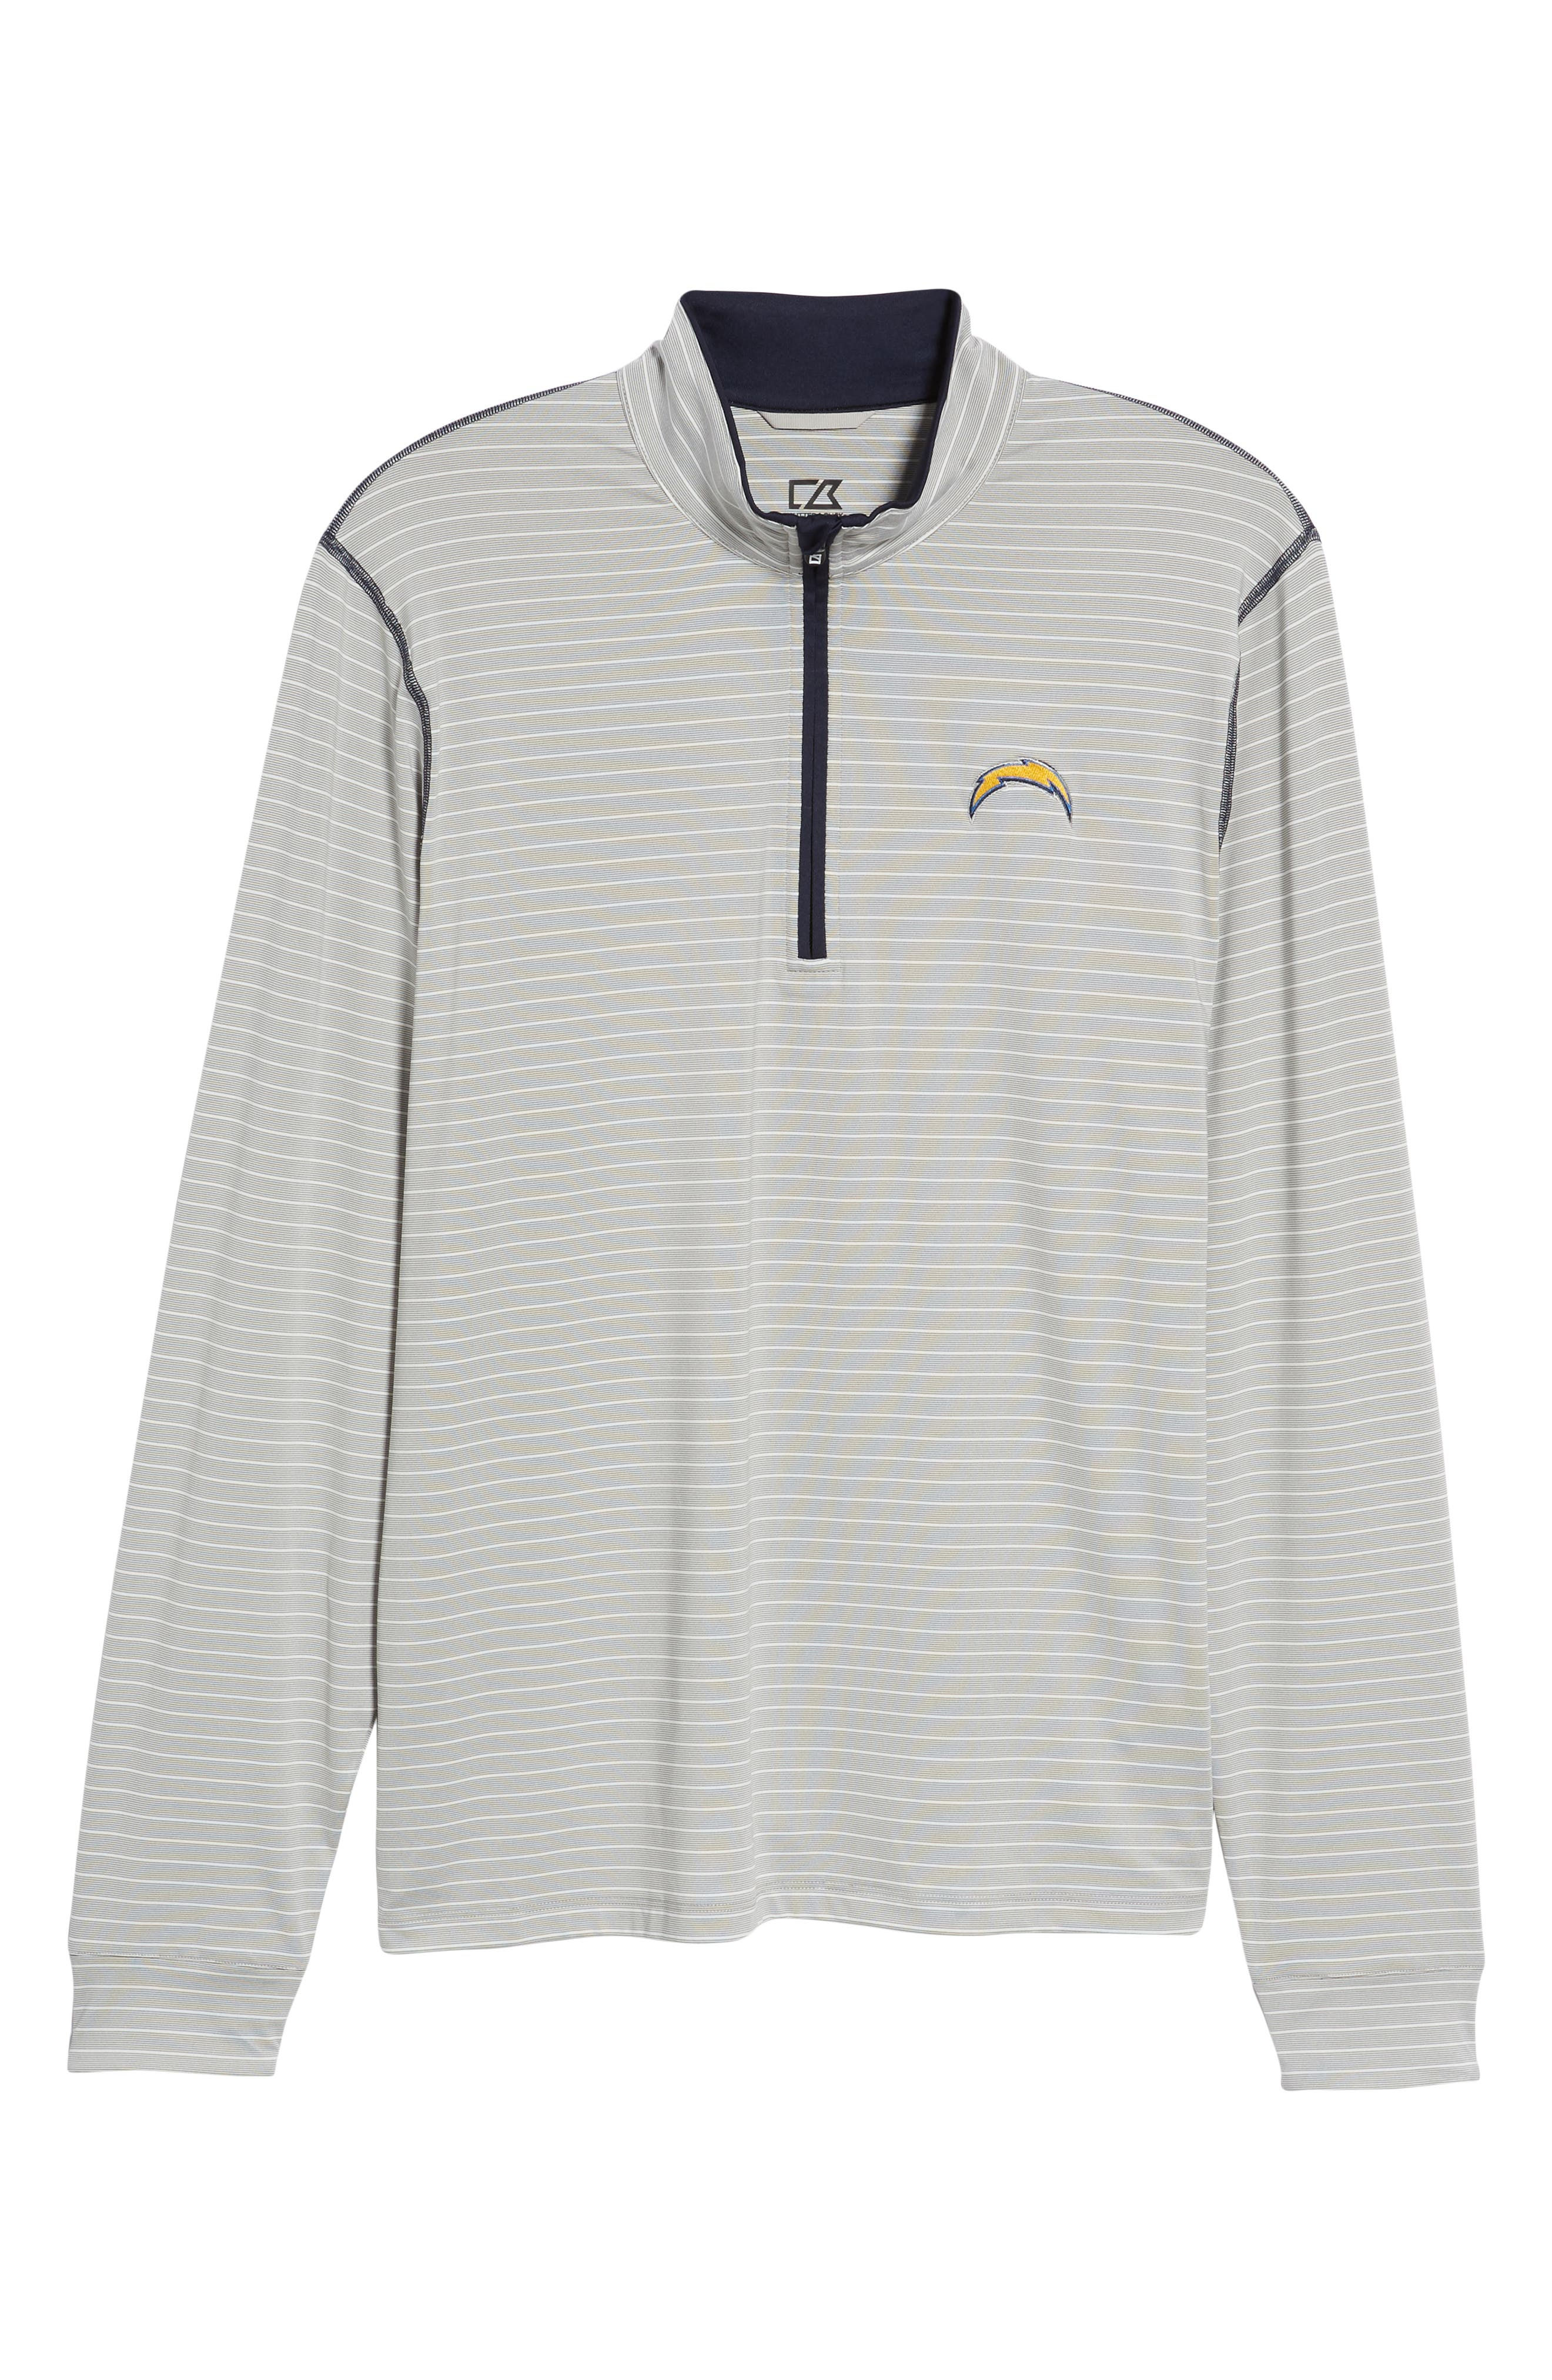 Meridian - Los Angeles Chargers Regular Fit Half Zip Pullover,                             Alternate thumbnail 6, color,                             NAVY